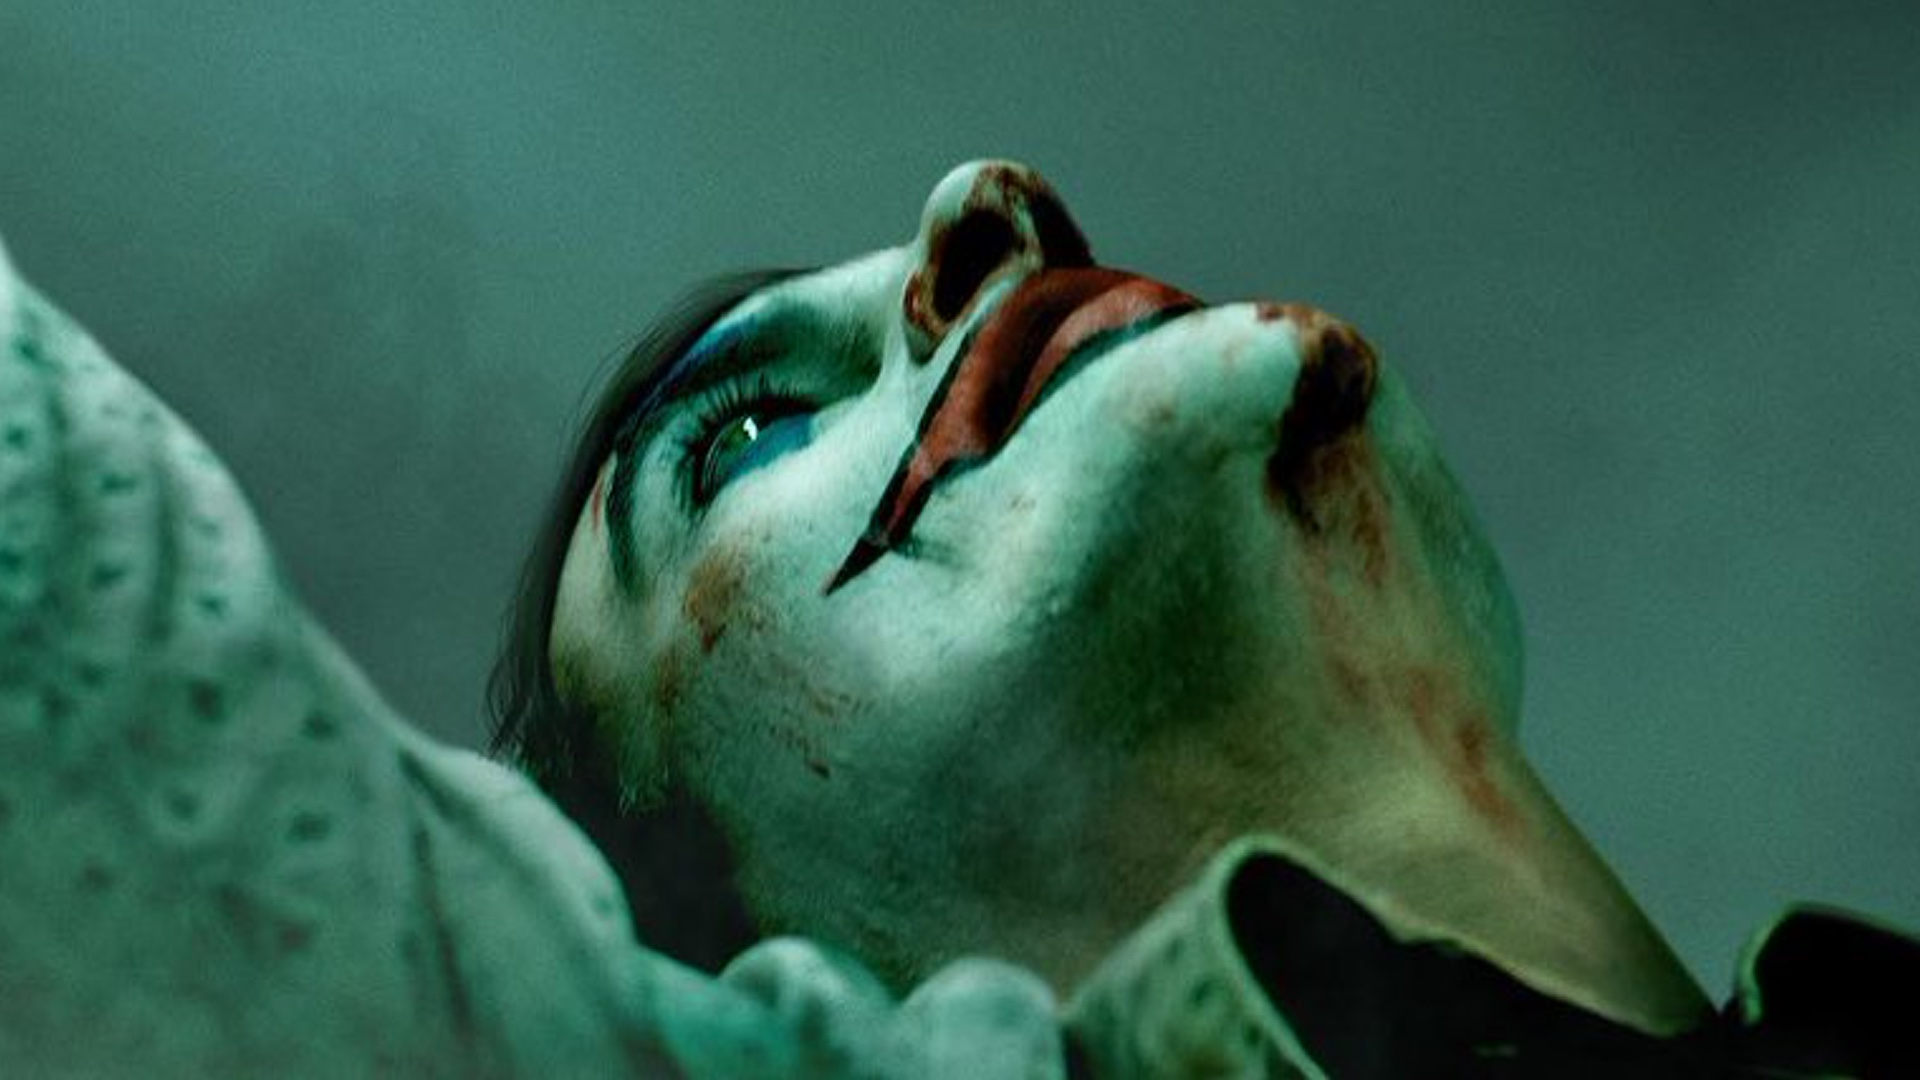 First Poster For DC's JOKER and The Trailer is Coming Tomorrow!-social.jpg